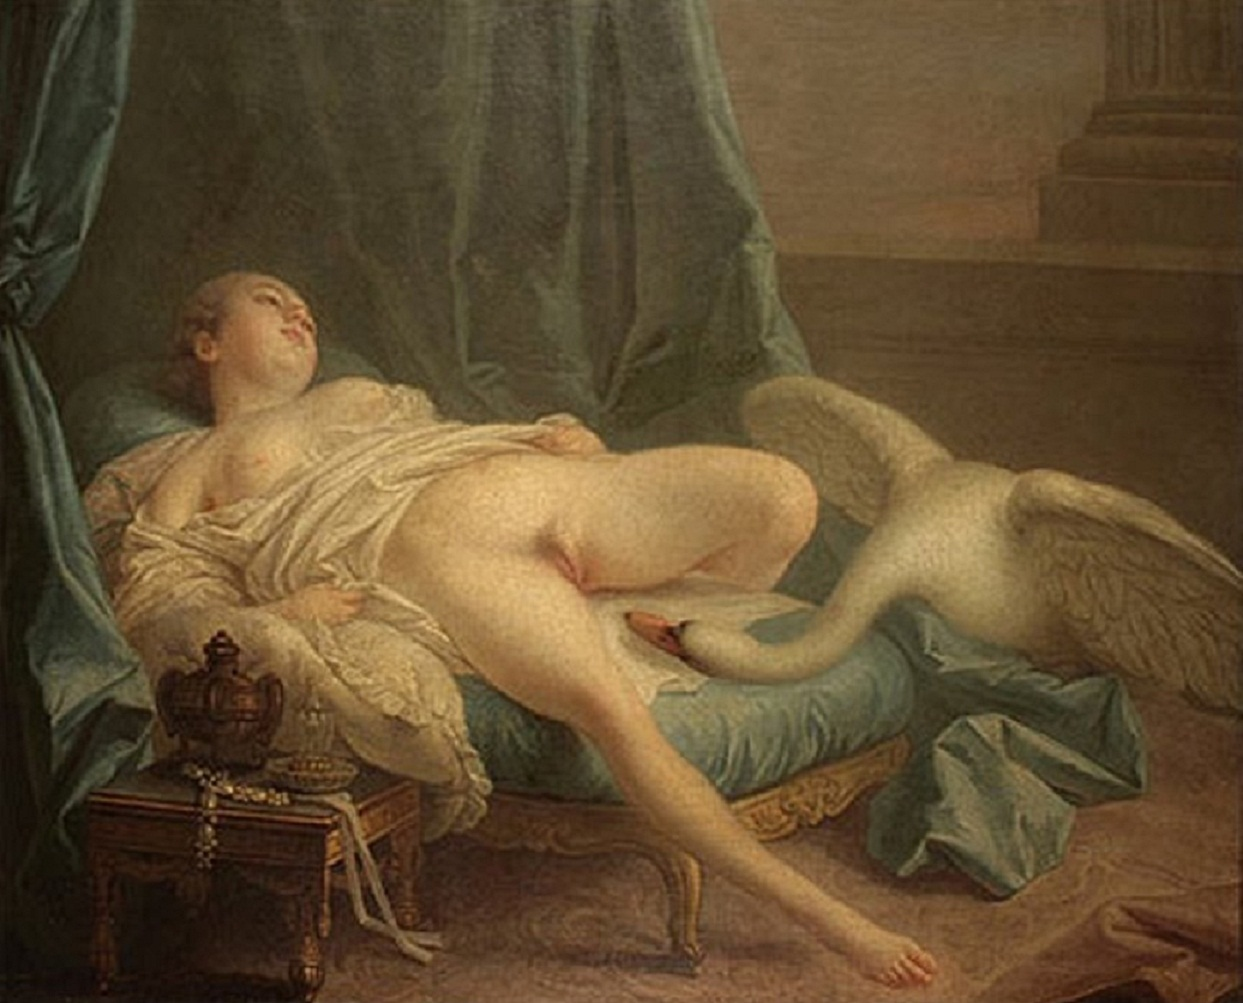 Sex paintings and art